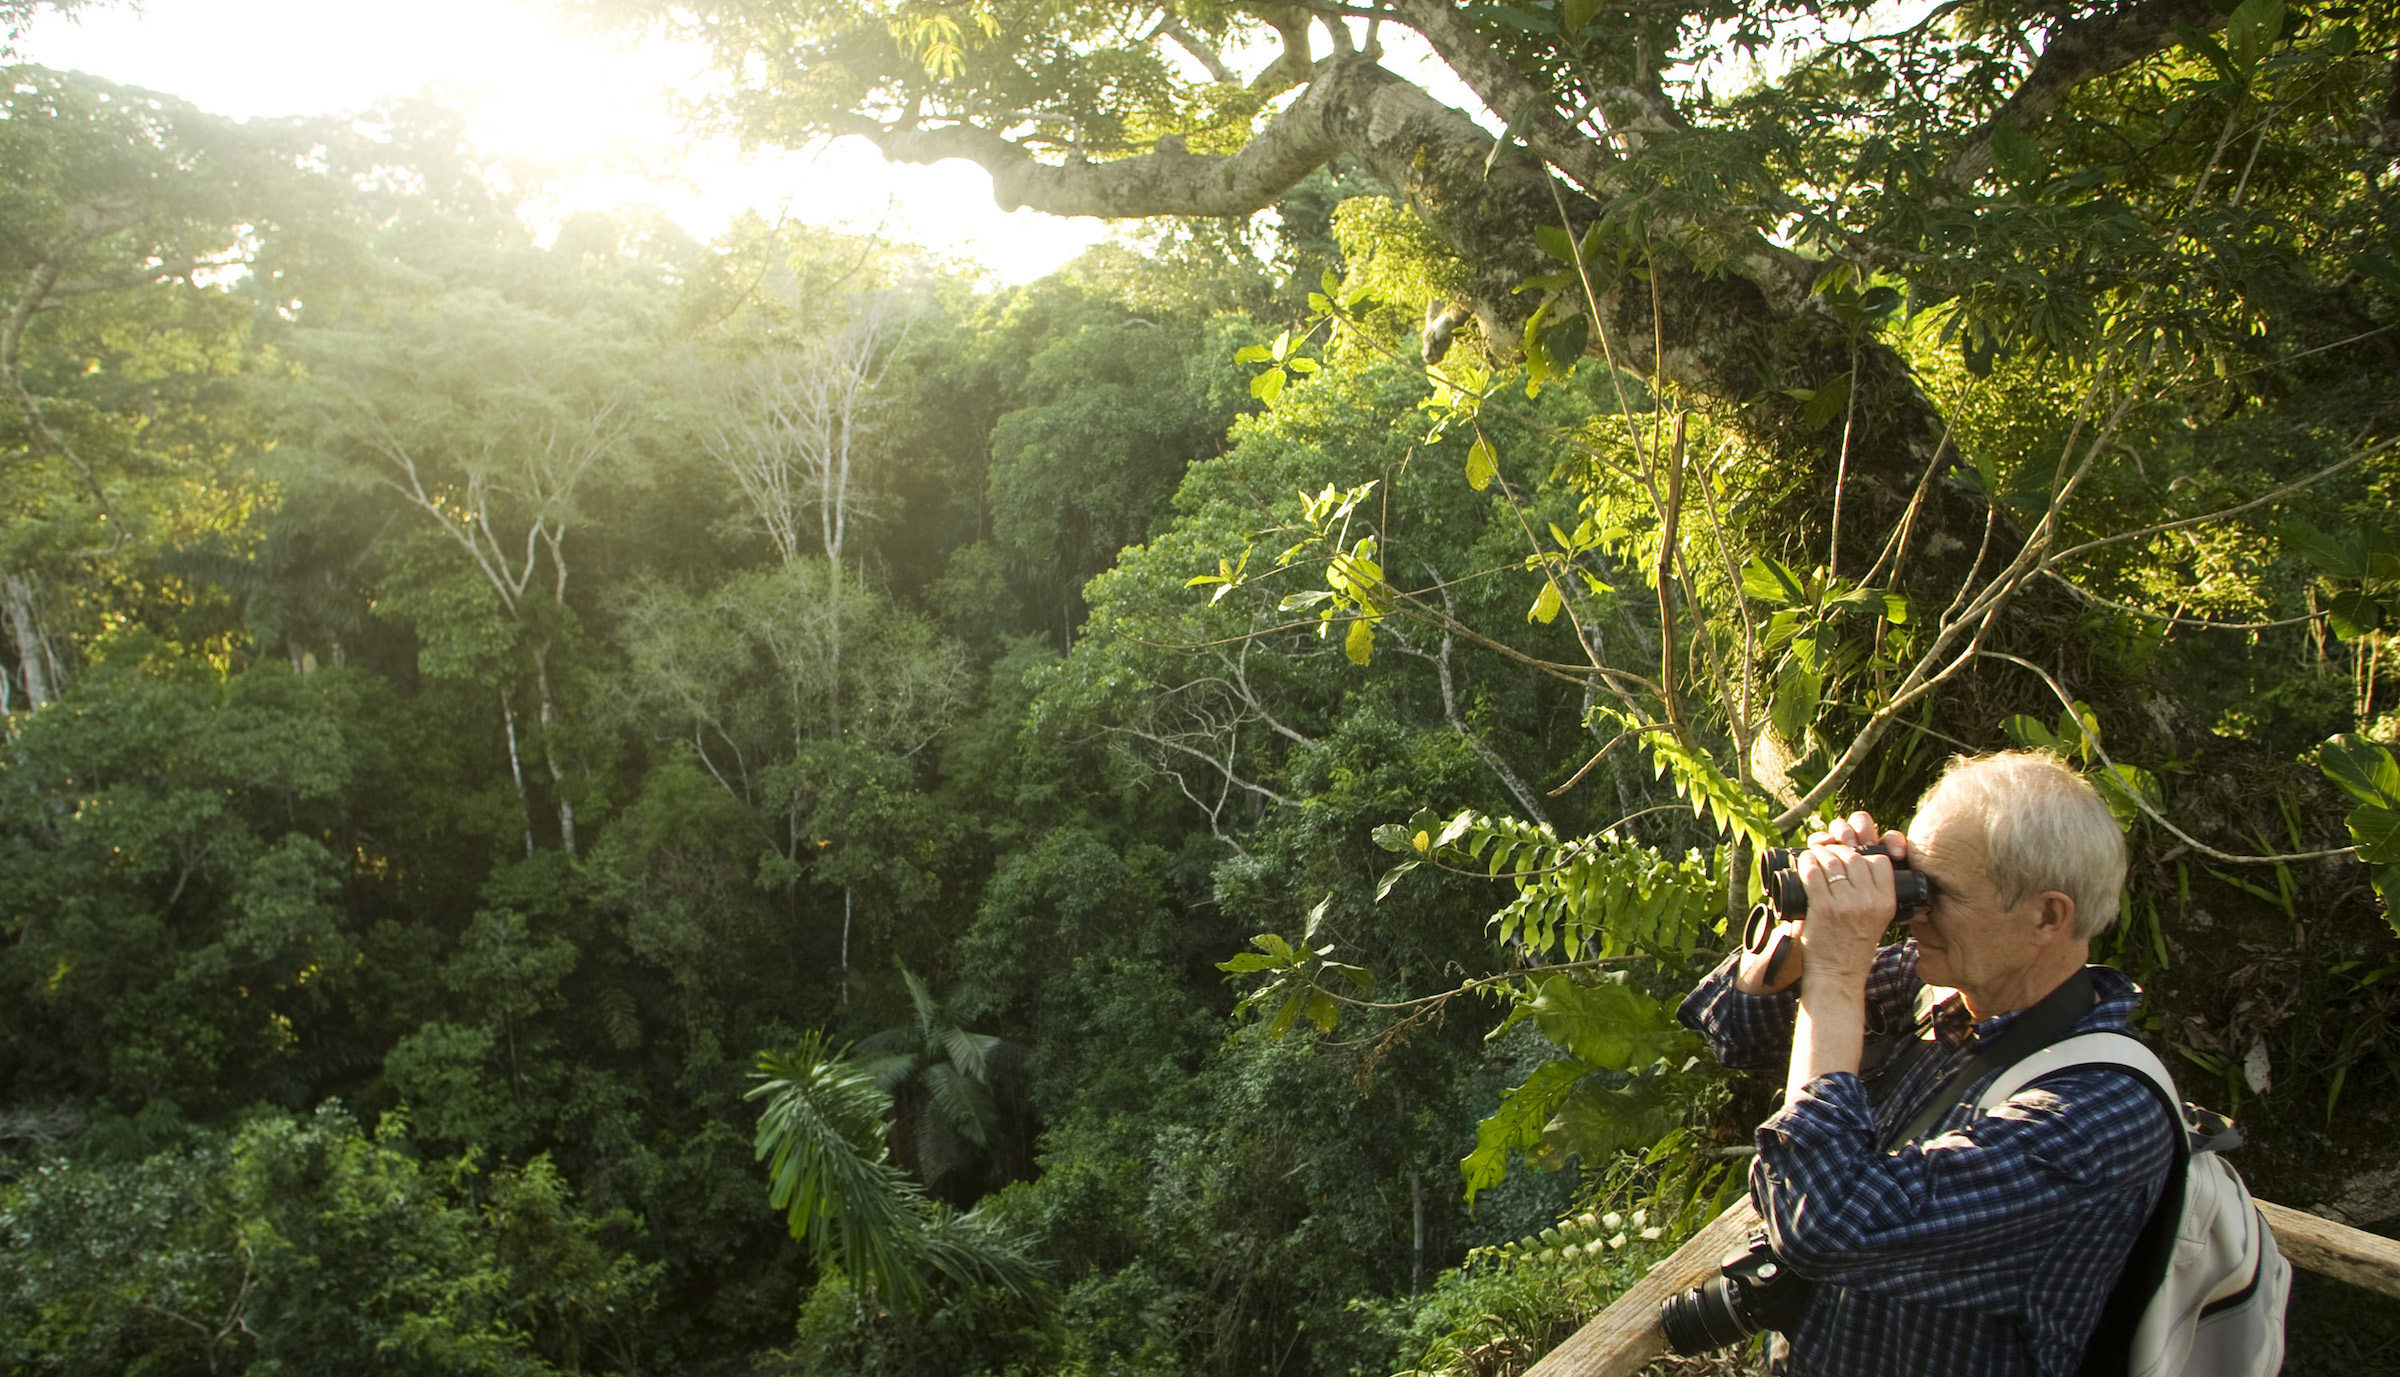 A tourist watches birds in the top of a canopy at the Manu Biosphere Reserve in Peru's southern Amazon region of Madre de Dios November 2, 2009. This 1.8 million hectares reserve is the home of 600 birds species and 11 monkey species among other animals, as caymans and mammals, and has one of the highest levels of biodiversity of any park in the world with more than 200 varieties of trees found in one hectare. Picture taken November 2, 2009. REUTERS/Enrique Castro-Mendivil (PERU ENVIRONMENT TRAVEL) - RTXQDQM